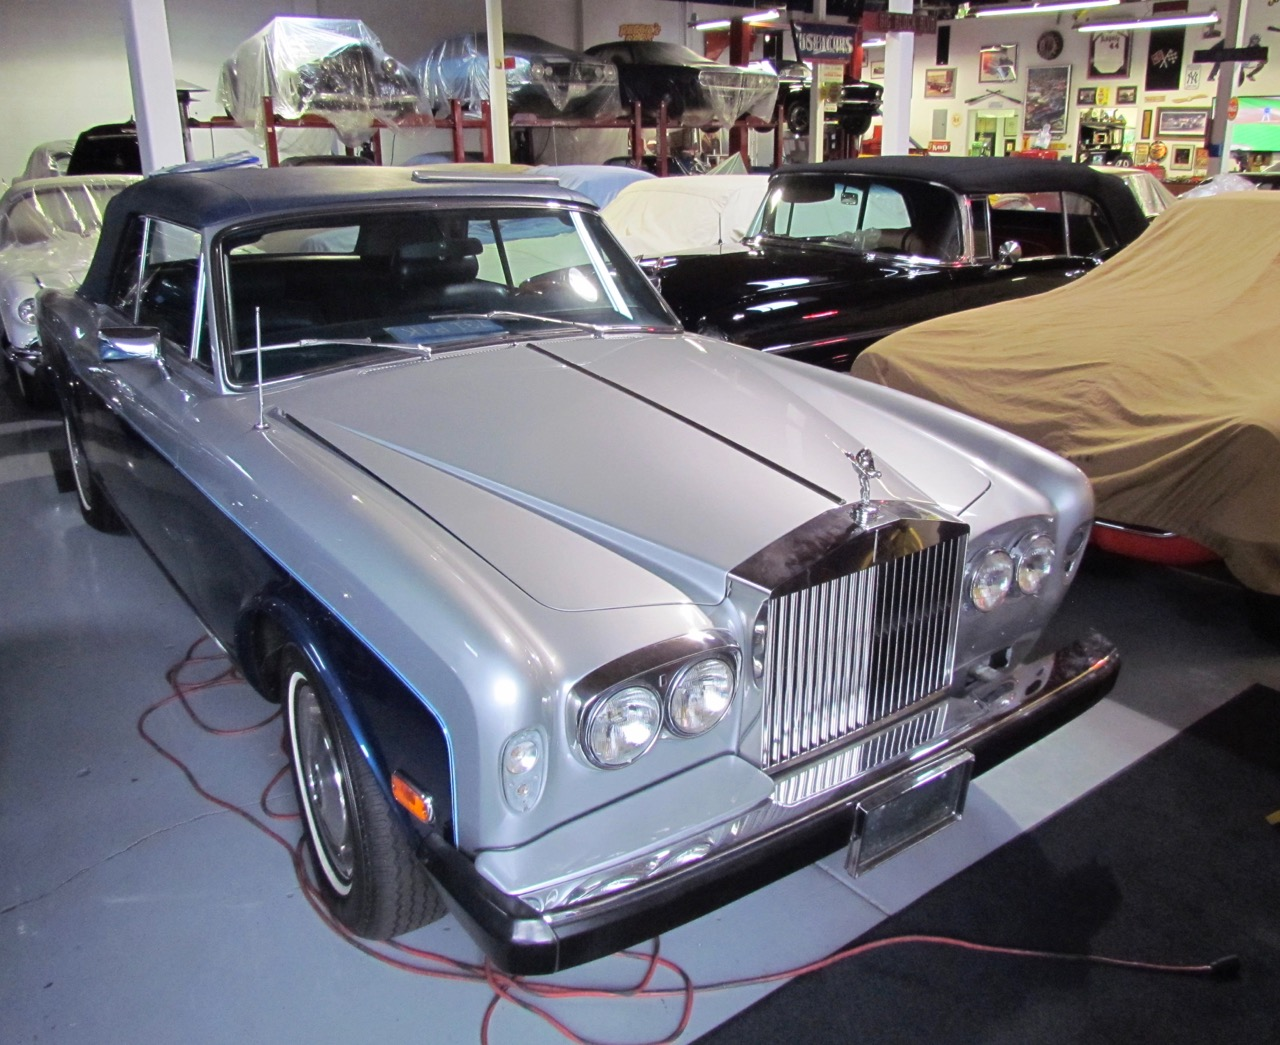 Jackson drove across the country in this Rolls-Royce